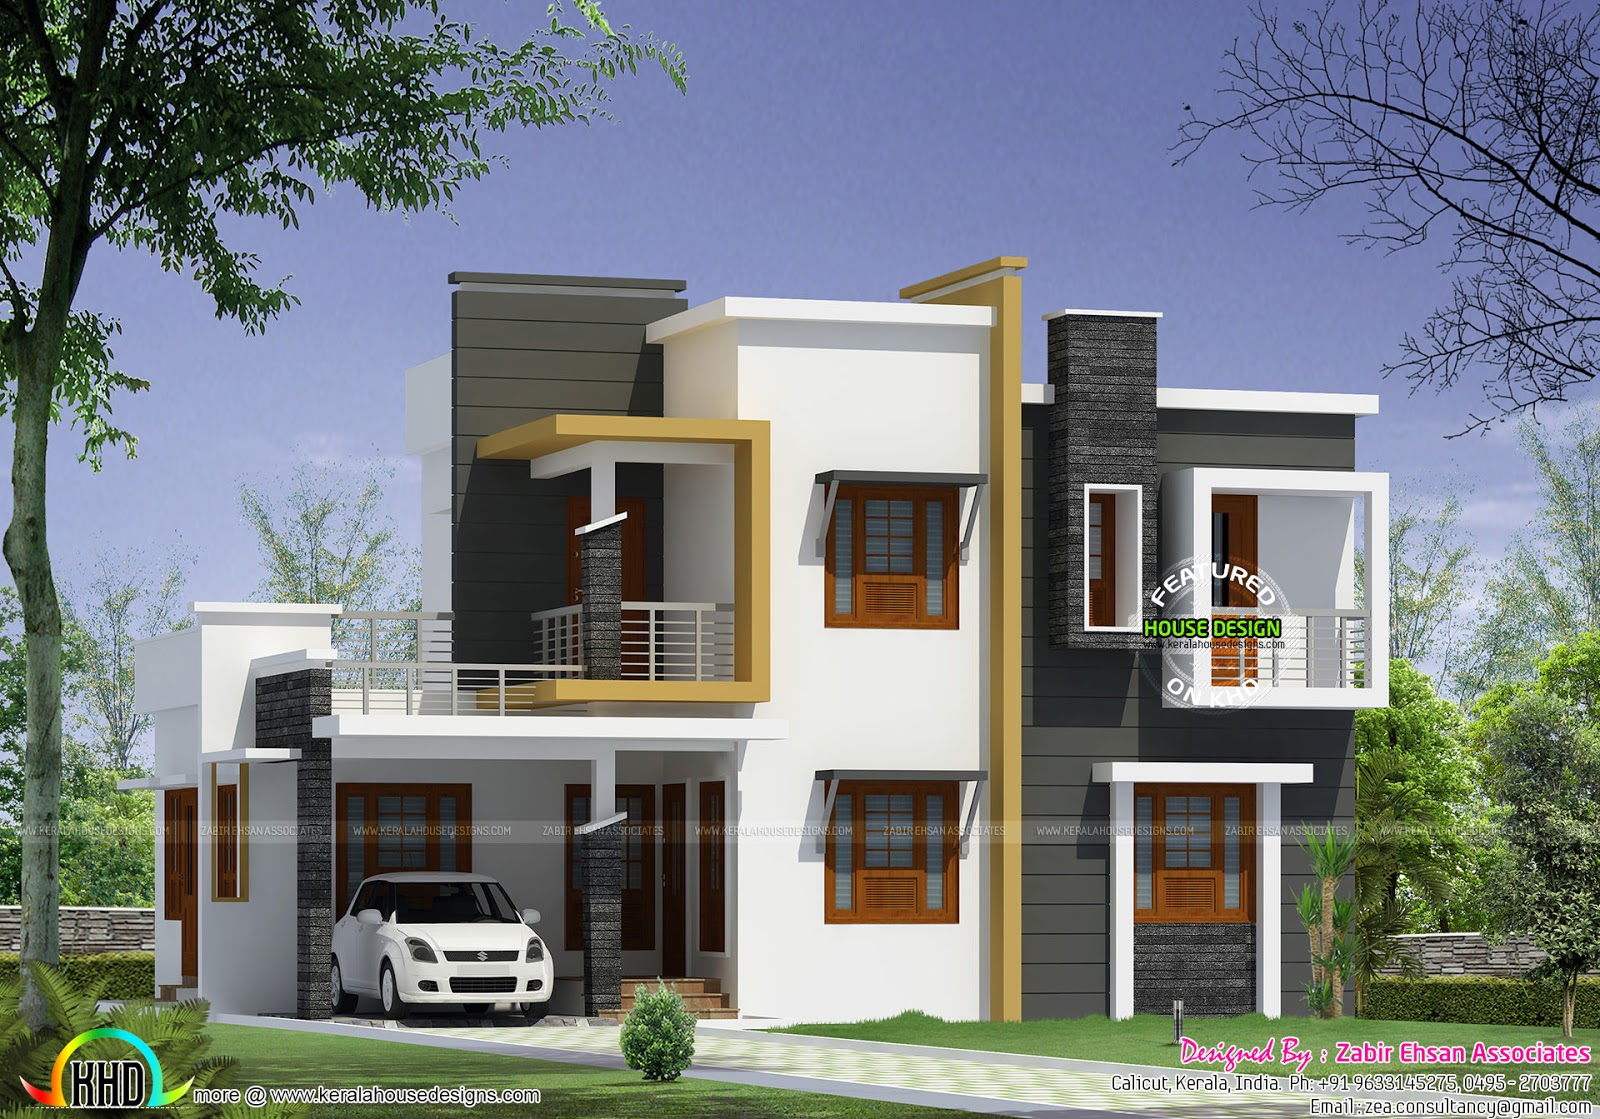 Box type modern house plan kerala home design and floor Modern home house plans